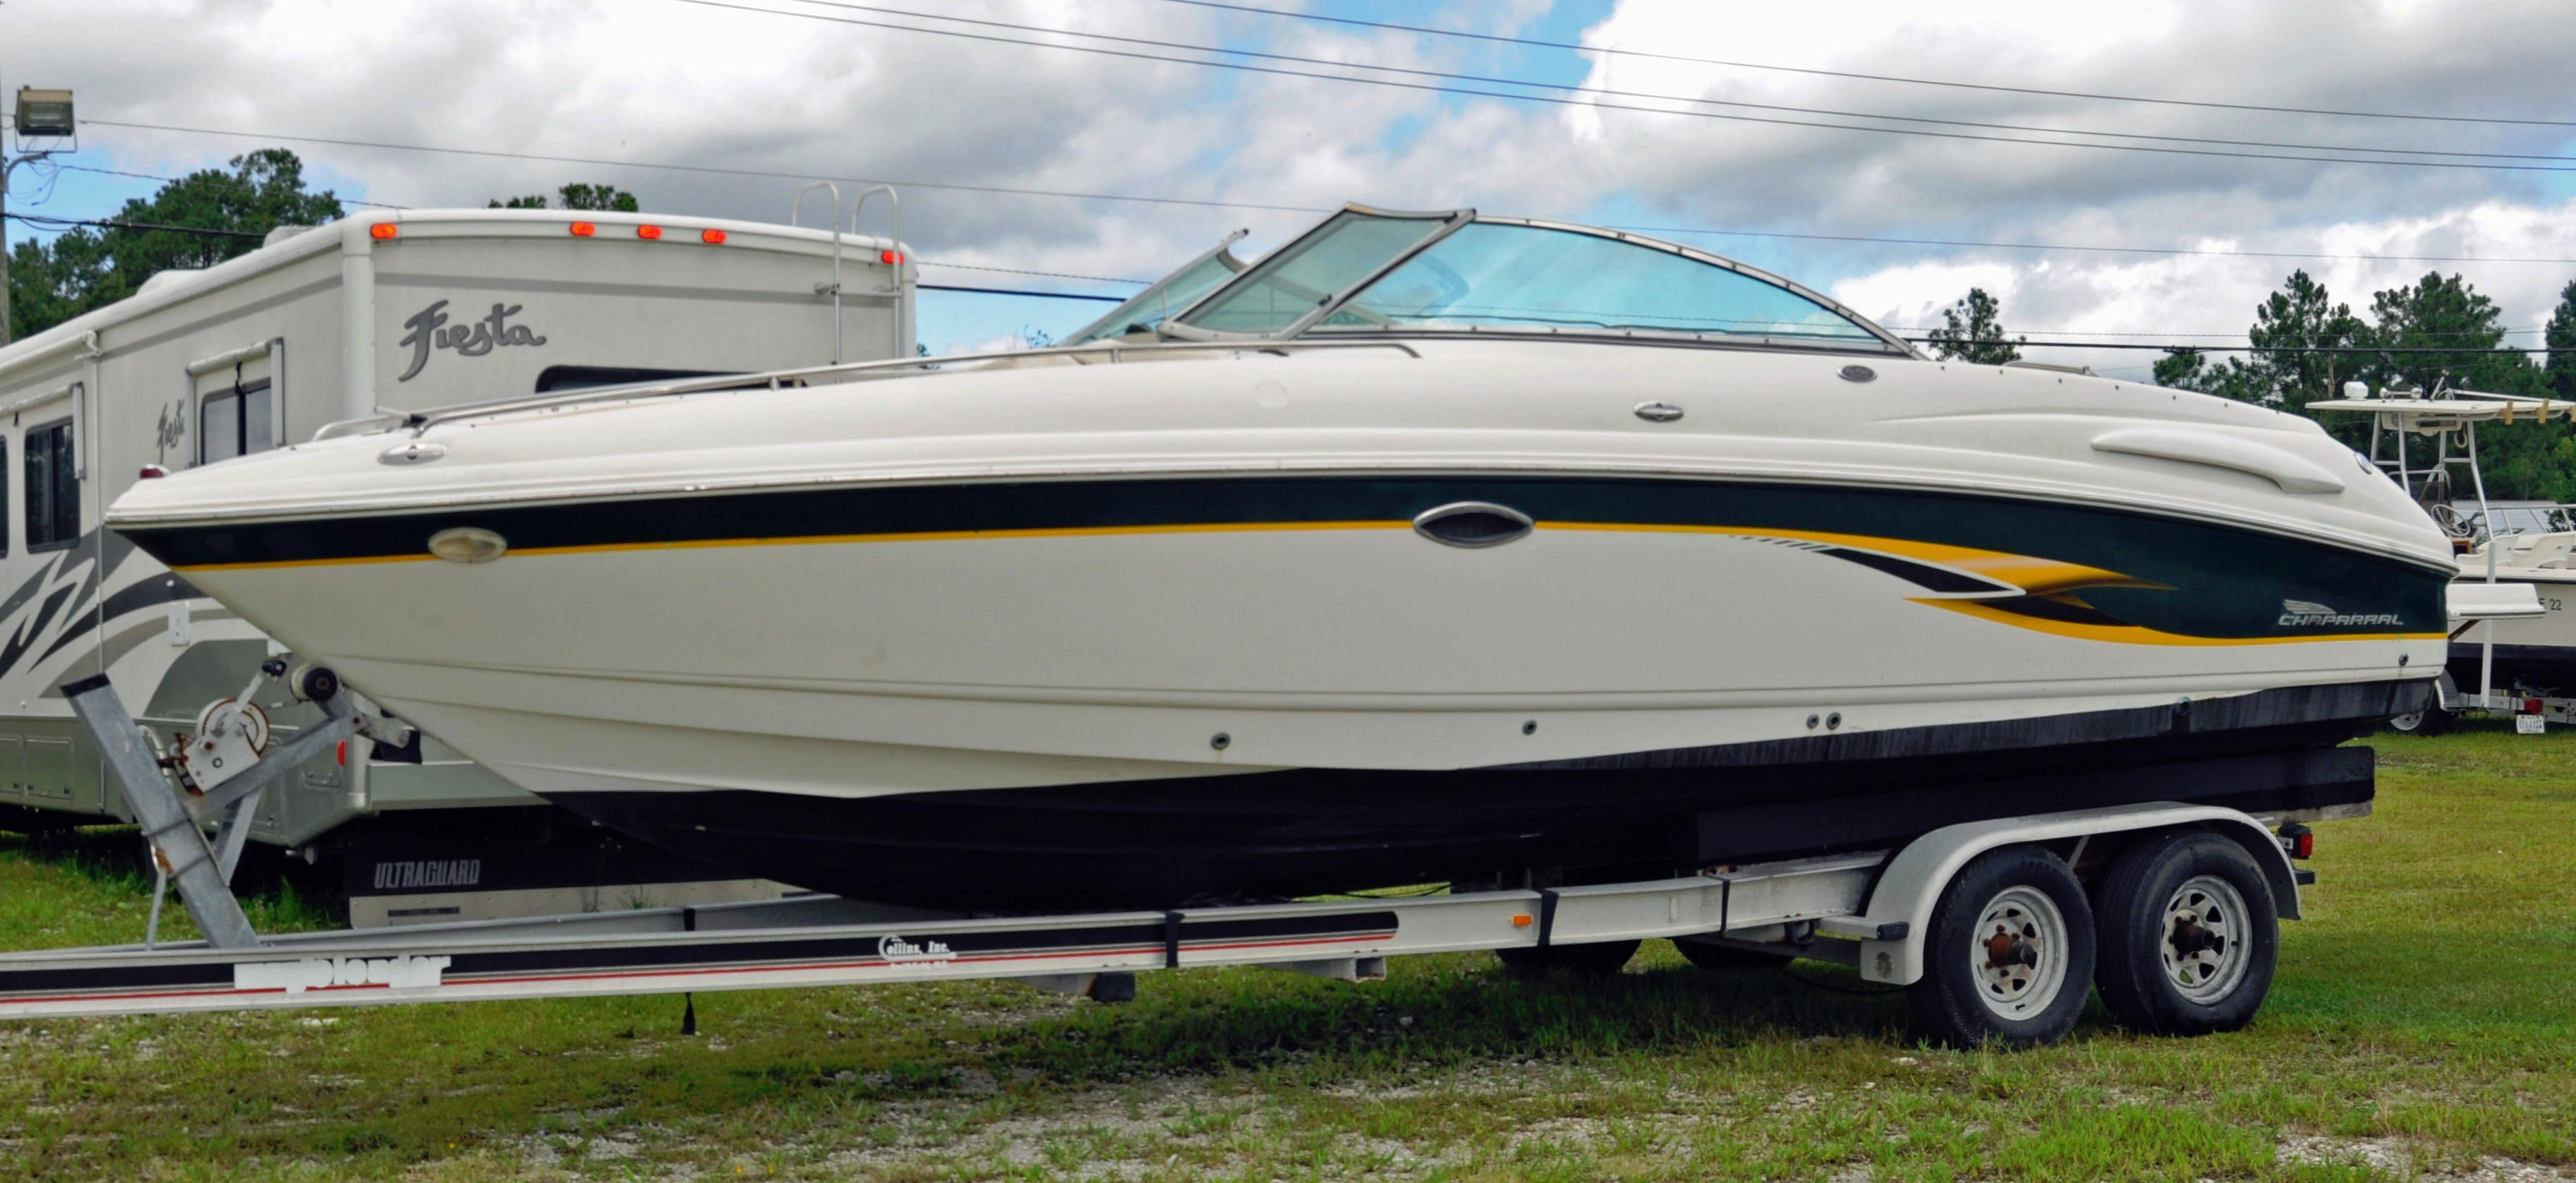 24 995 2001 chaparral 260 ssi power boat wilmington nc